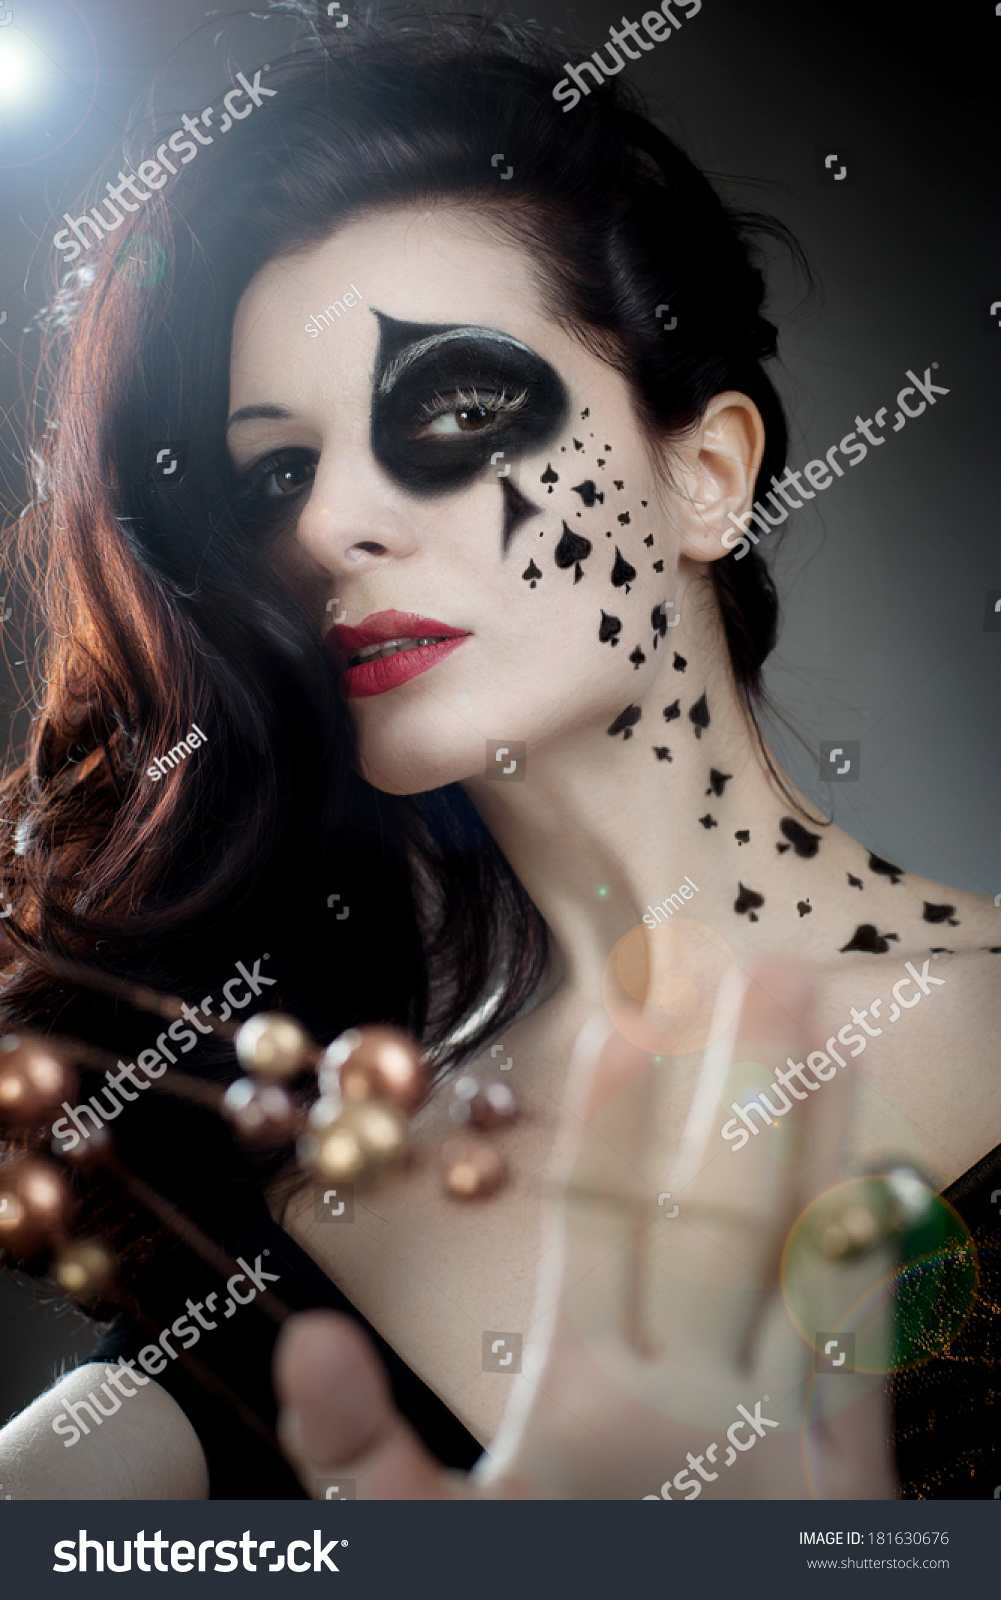 queen of spades makeup queen stock photo 181630676 shutterstock. Black Bedroom Furniture Sets. Home Design Ideas